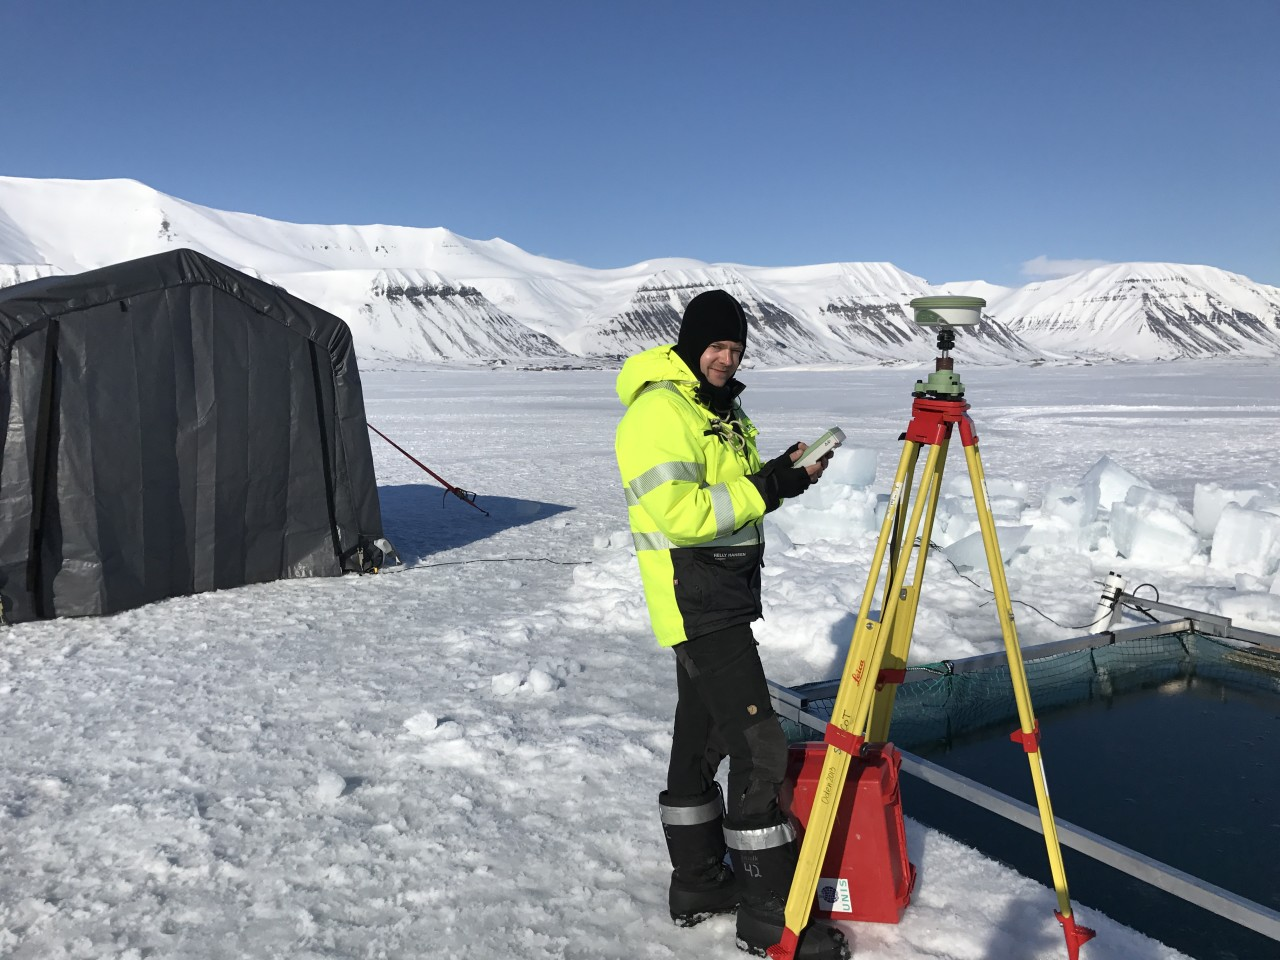 PhD candiate and AUV expert Petter Norgren establish accurate position of AUV launch point